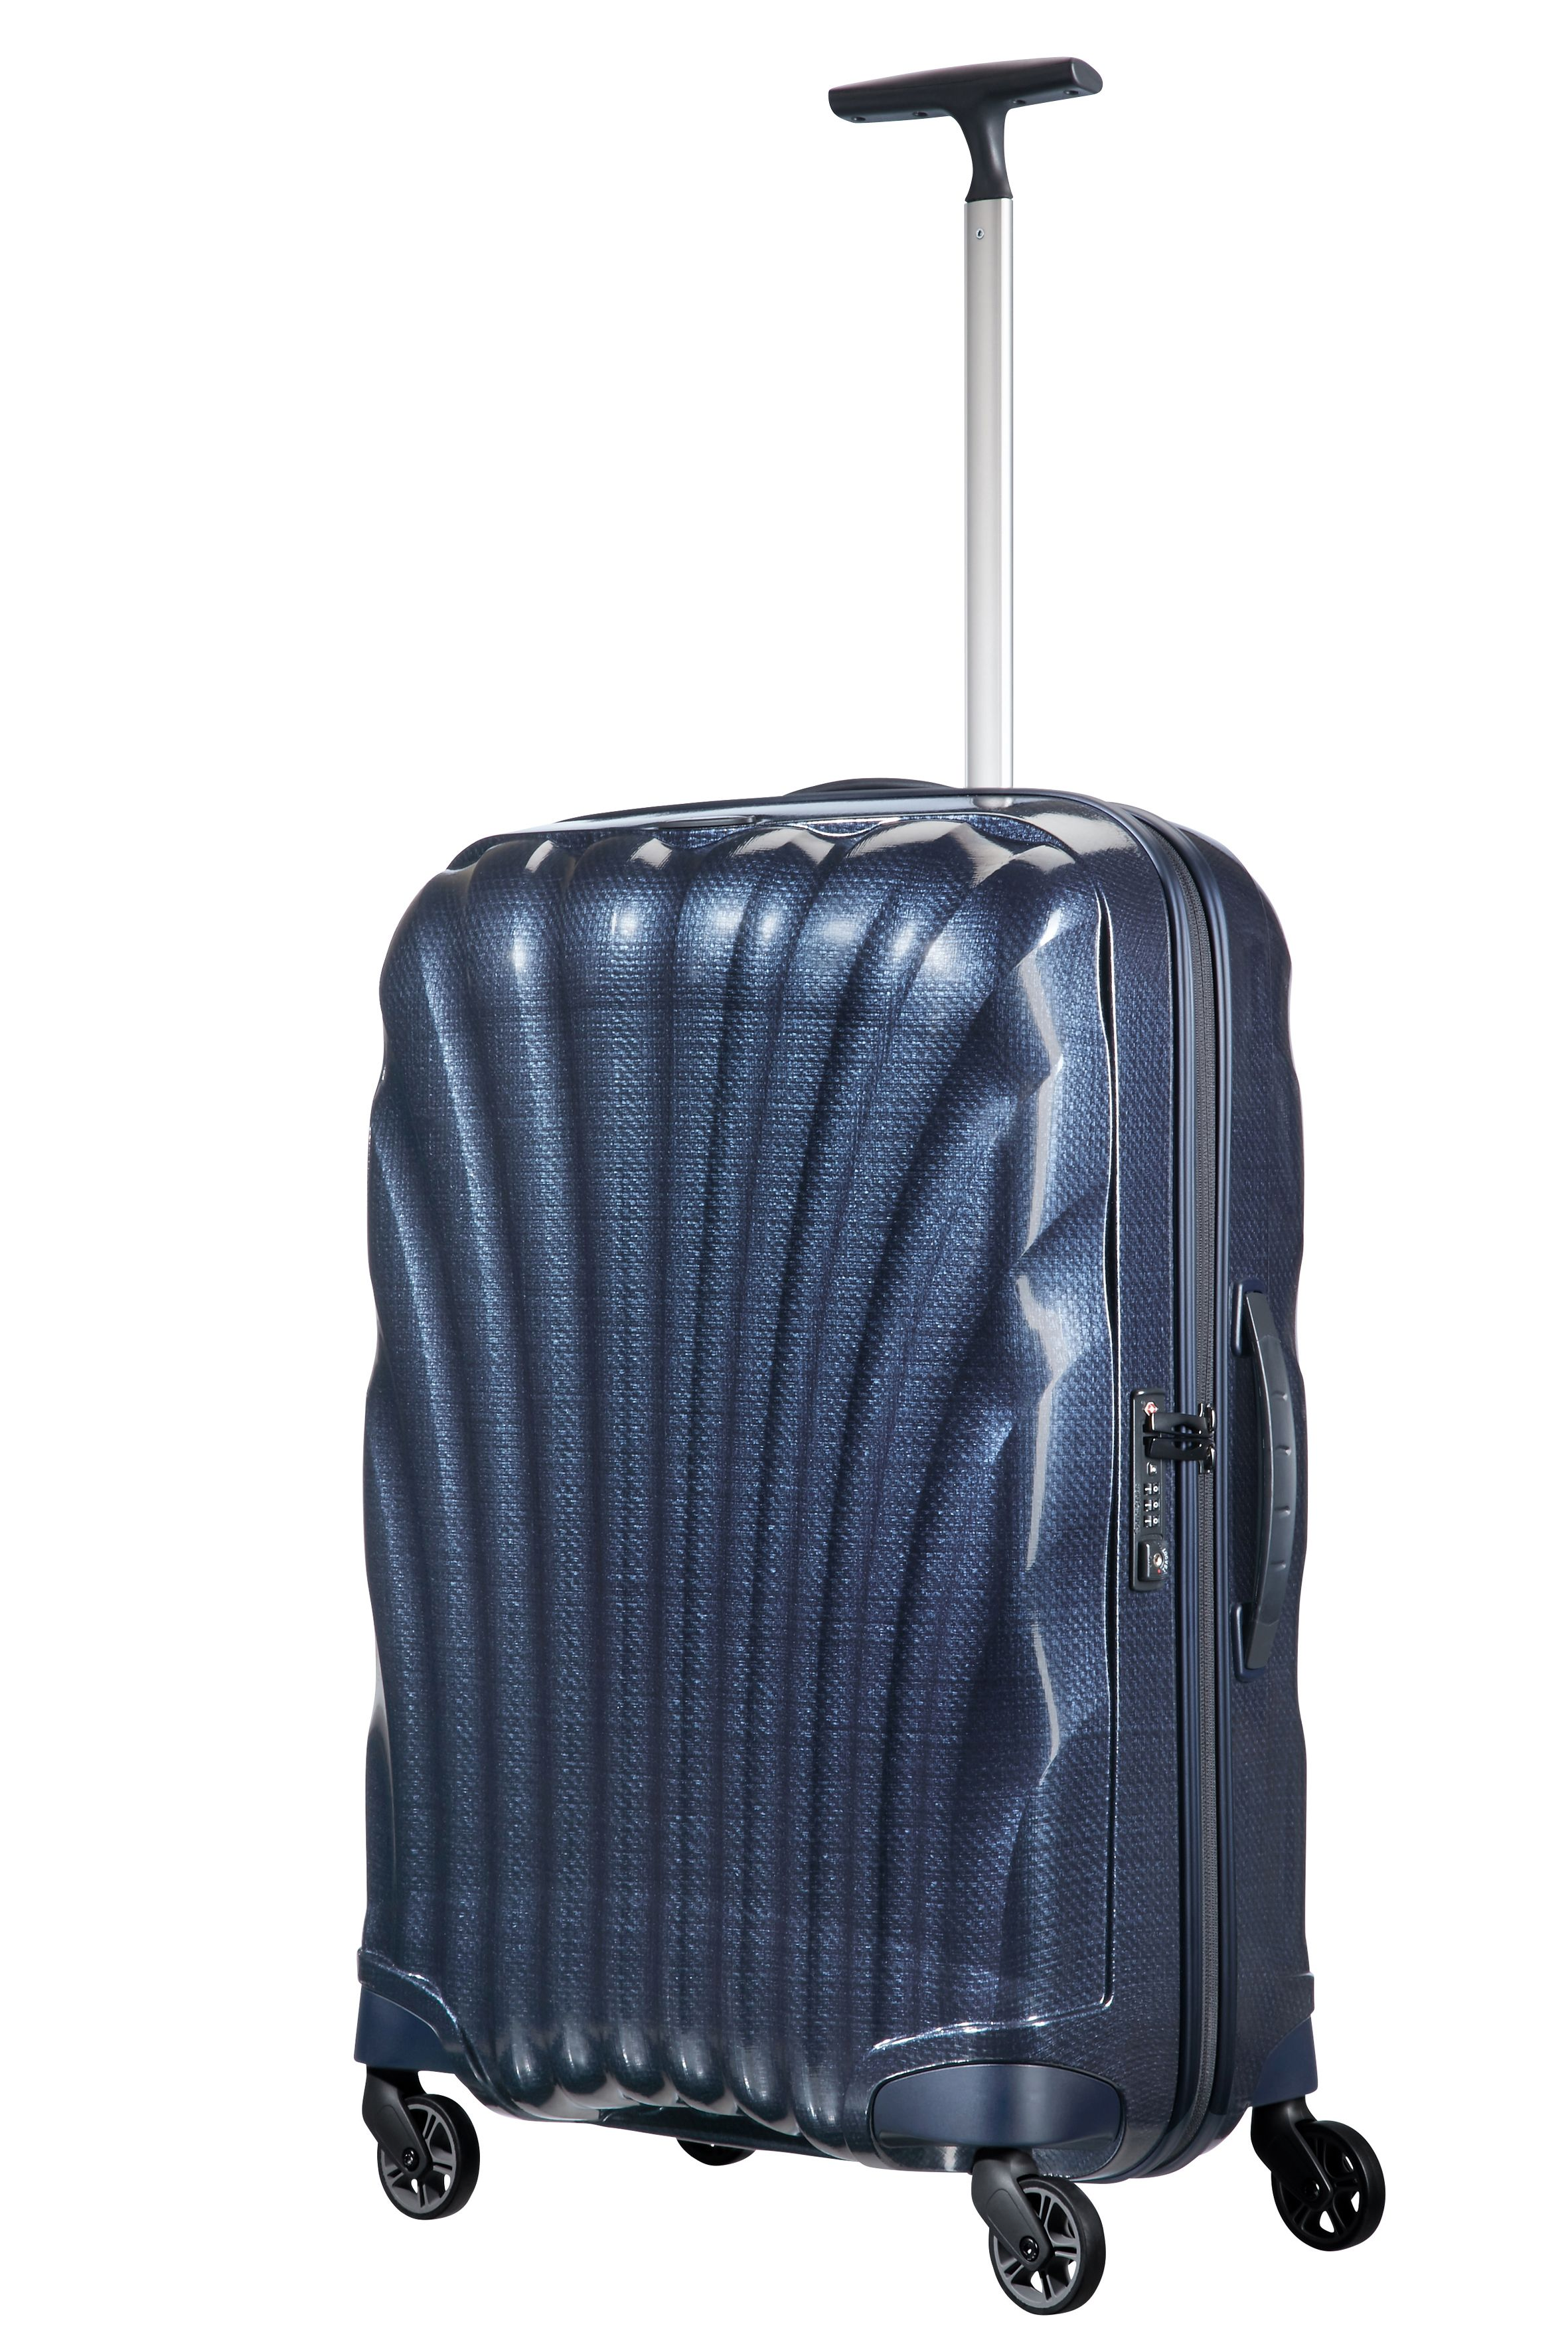 Samsonite Cosmolite 3.0 navy 4 wheel 69cm medium suitcase Navy